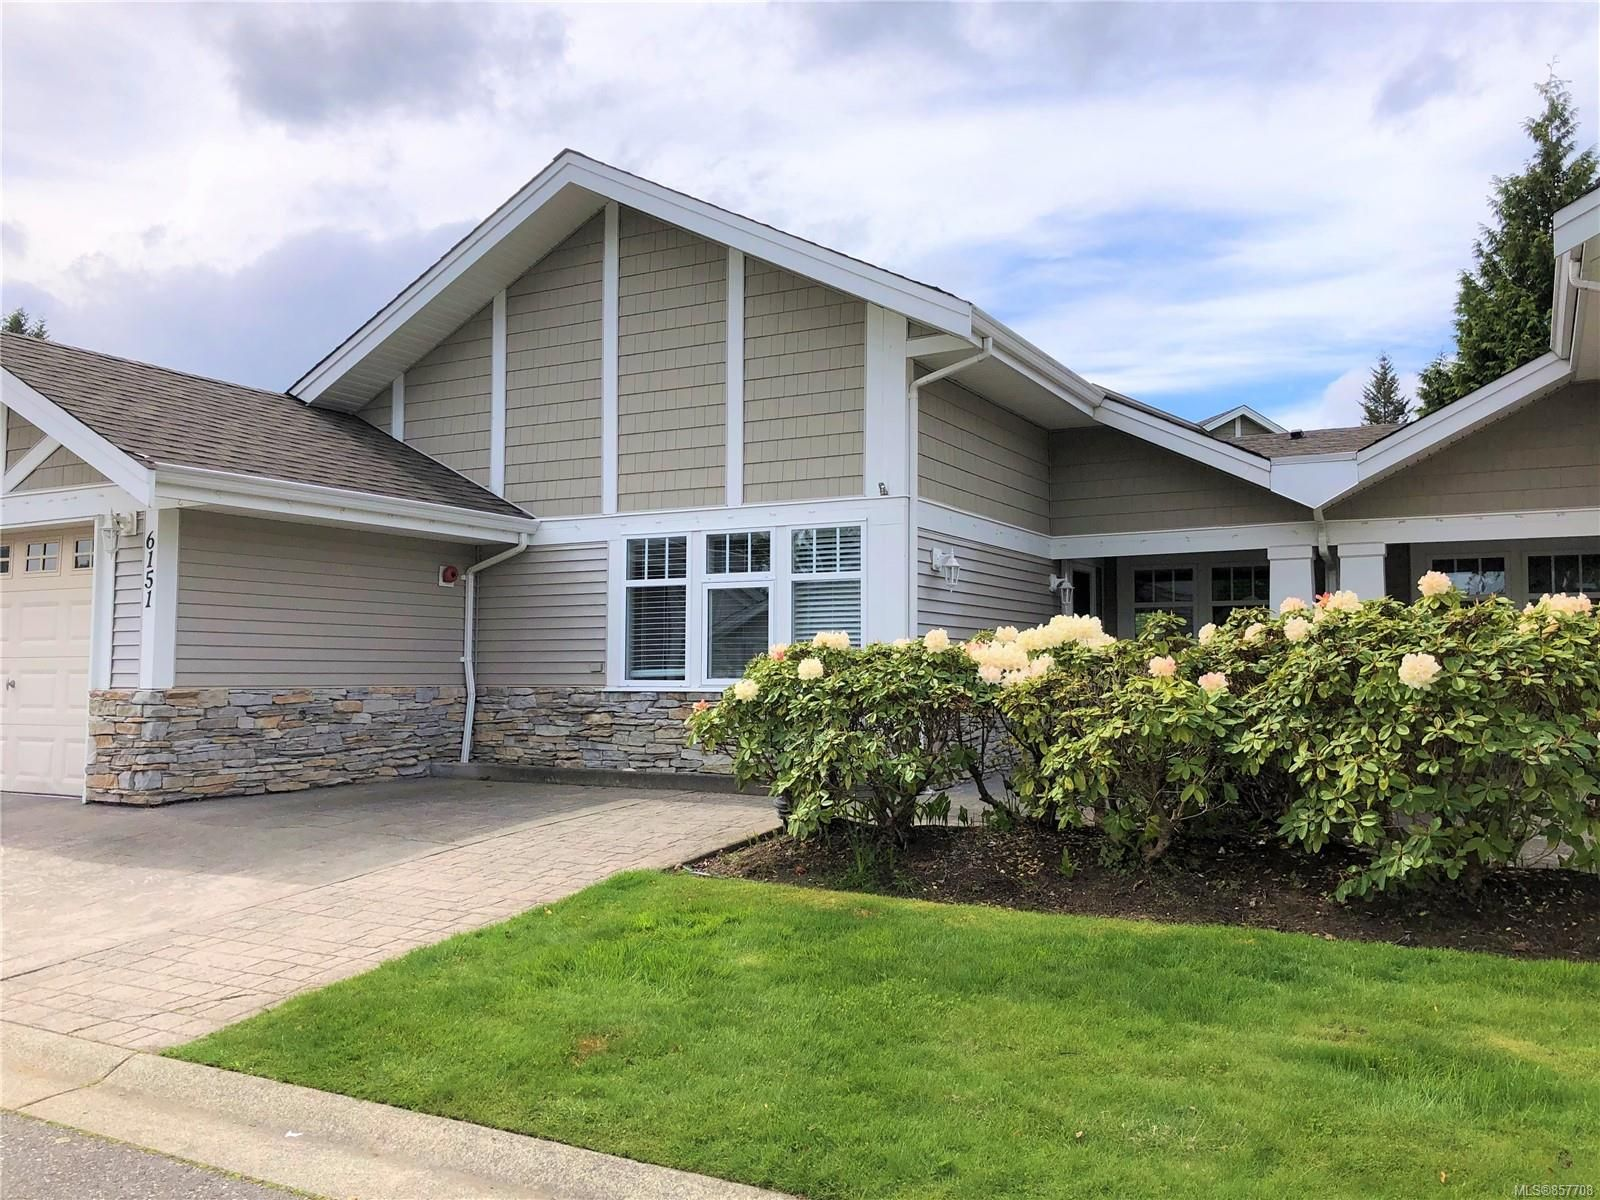 Main Photo: 6151 Bellflower Way in : Na North Nanaimo Row/Townhouse for sale (Nanaimo)  : MLS®# 857708